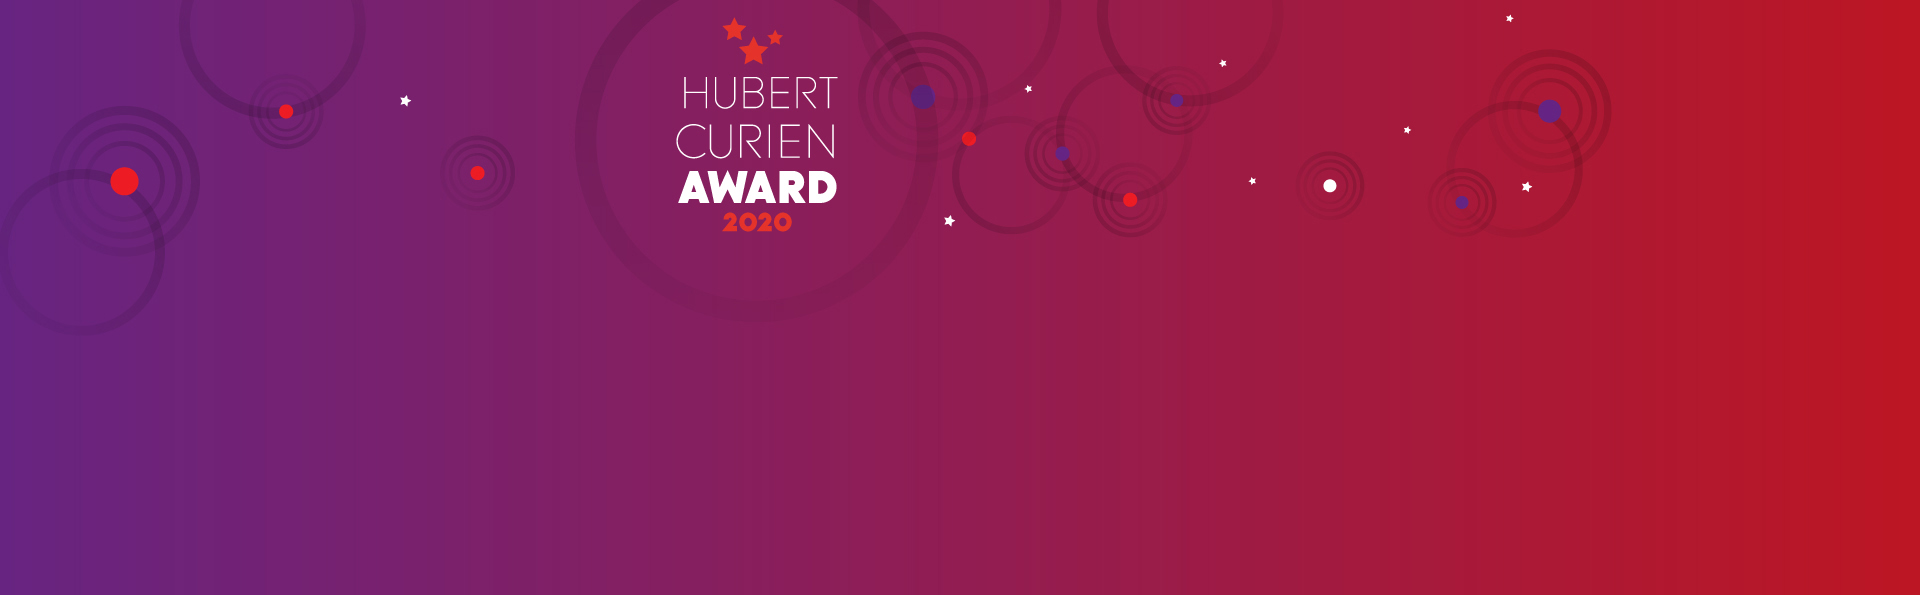 The Hubert Curien Award 2020